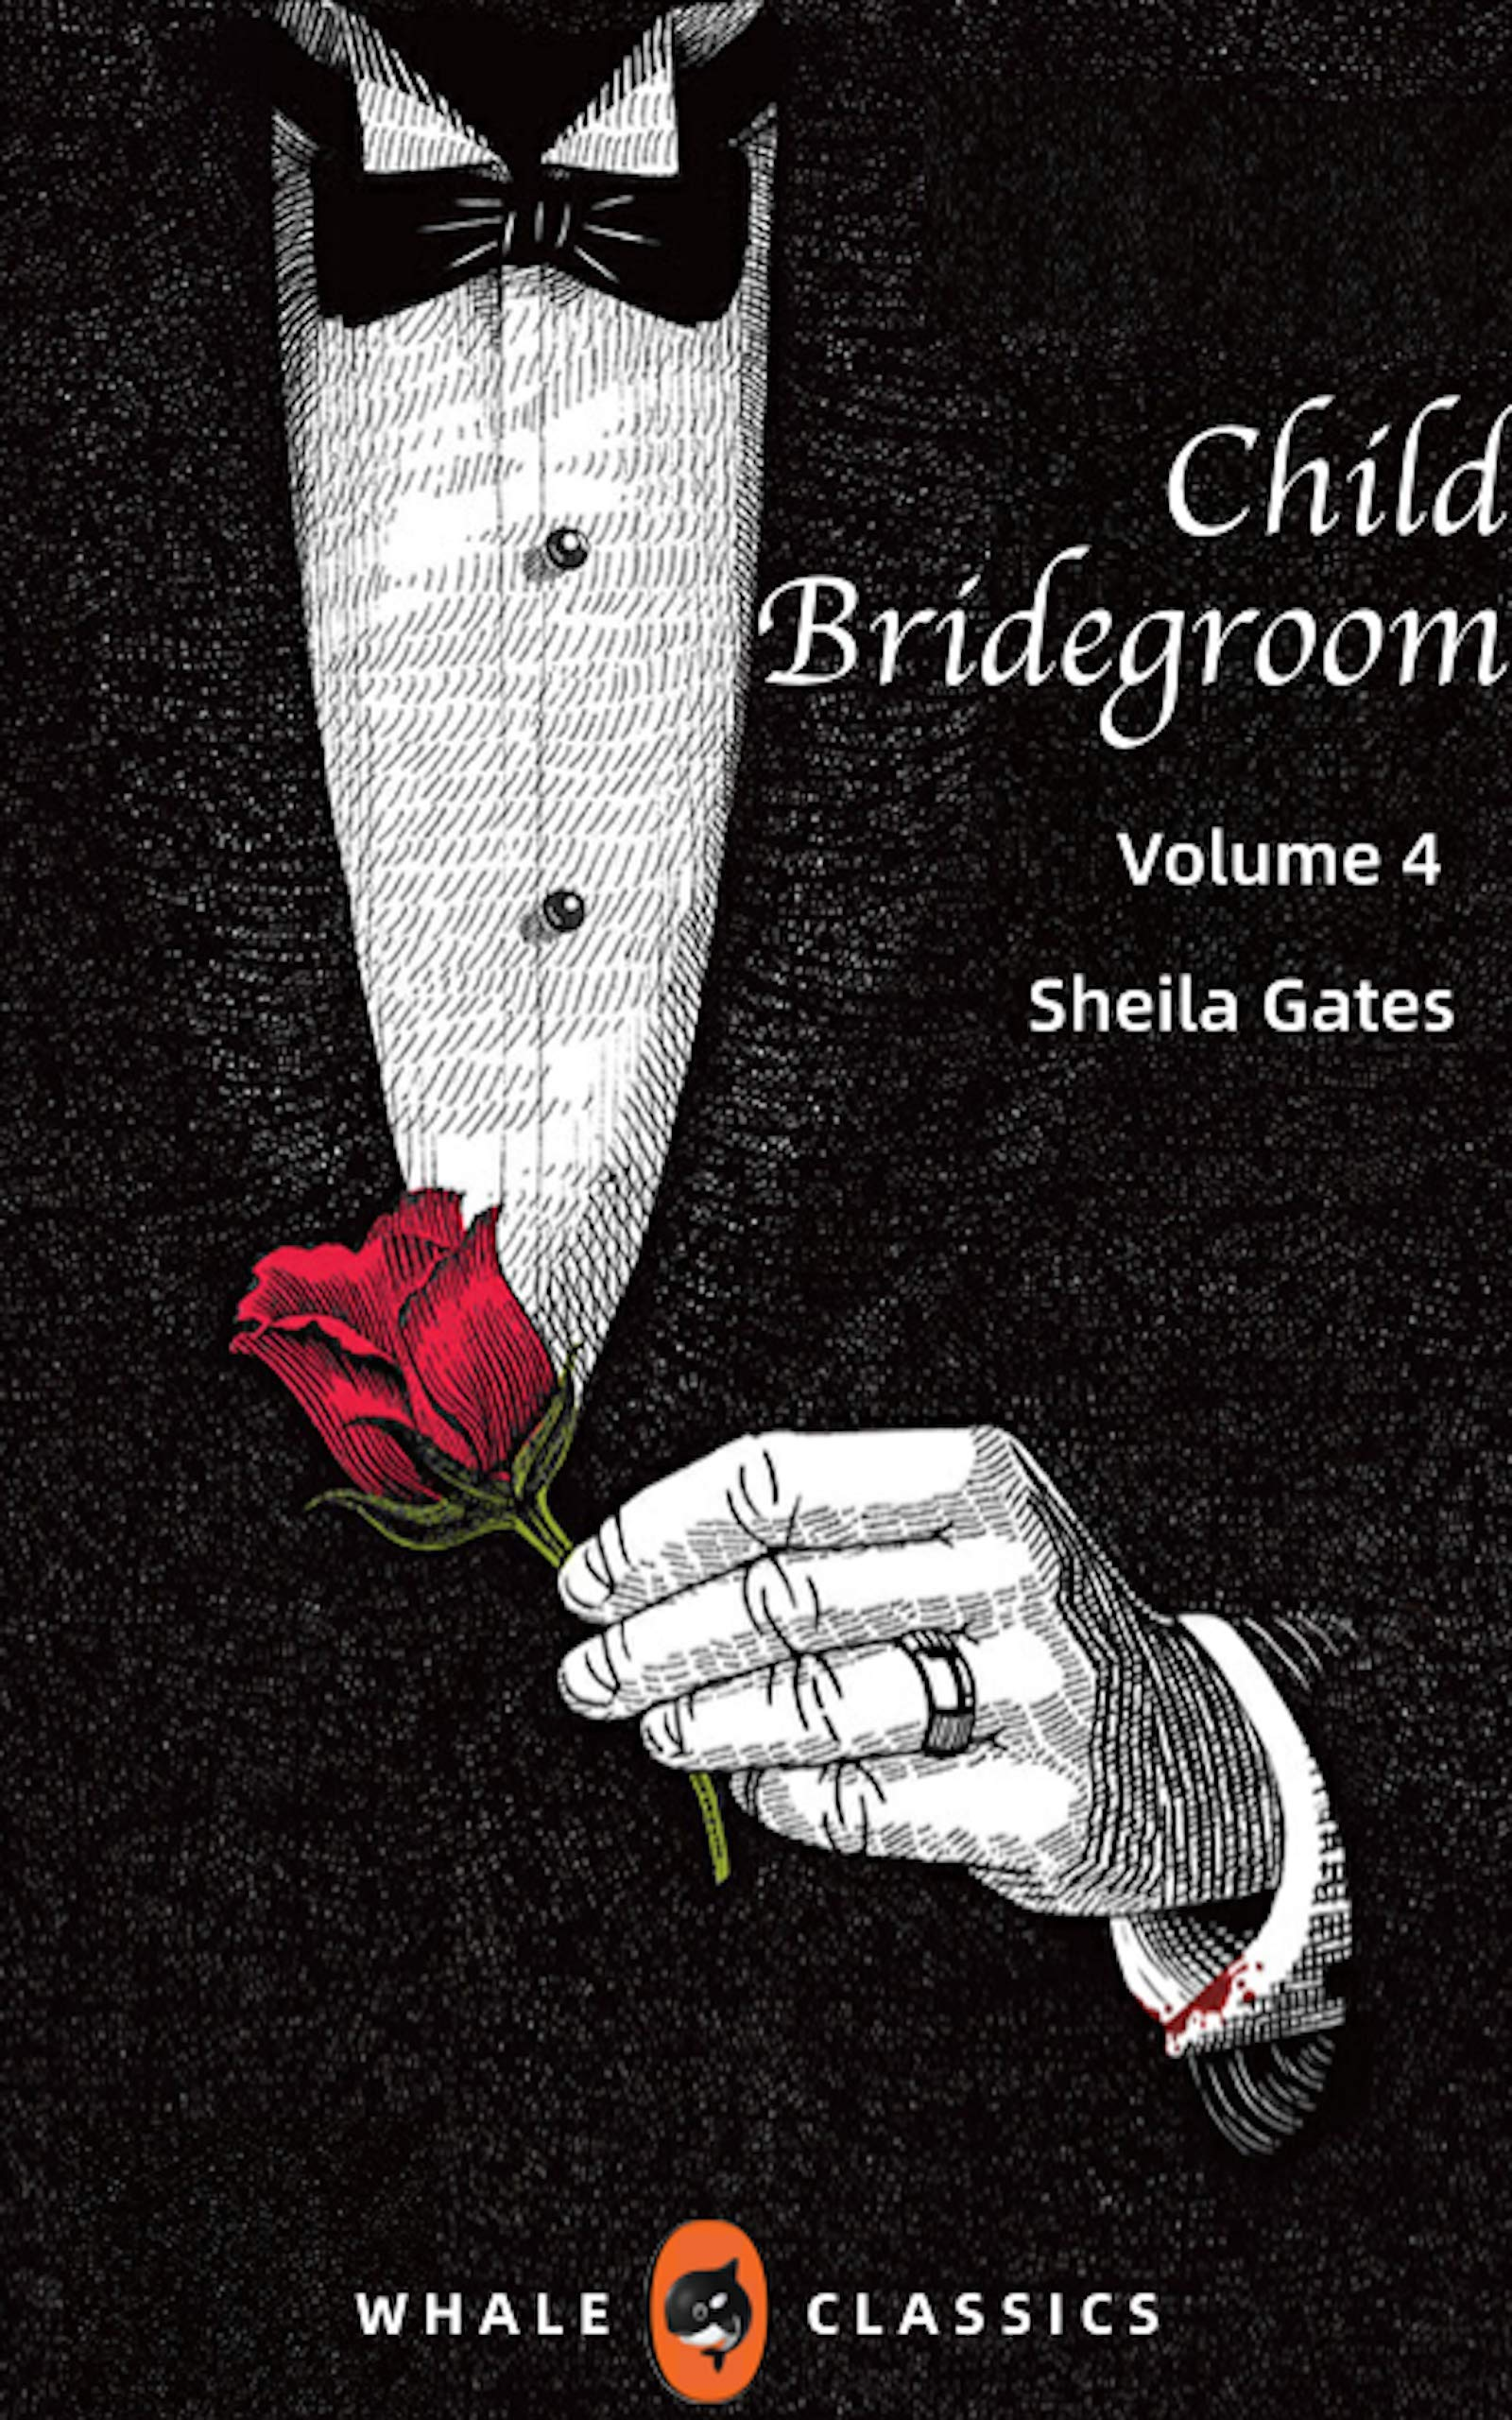 Child Bridegroom Volume 4: A gripping and heartbreaking story of love, loss and dark family secrets for 2020